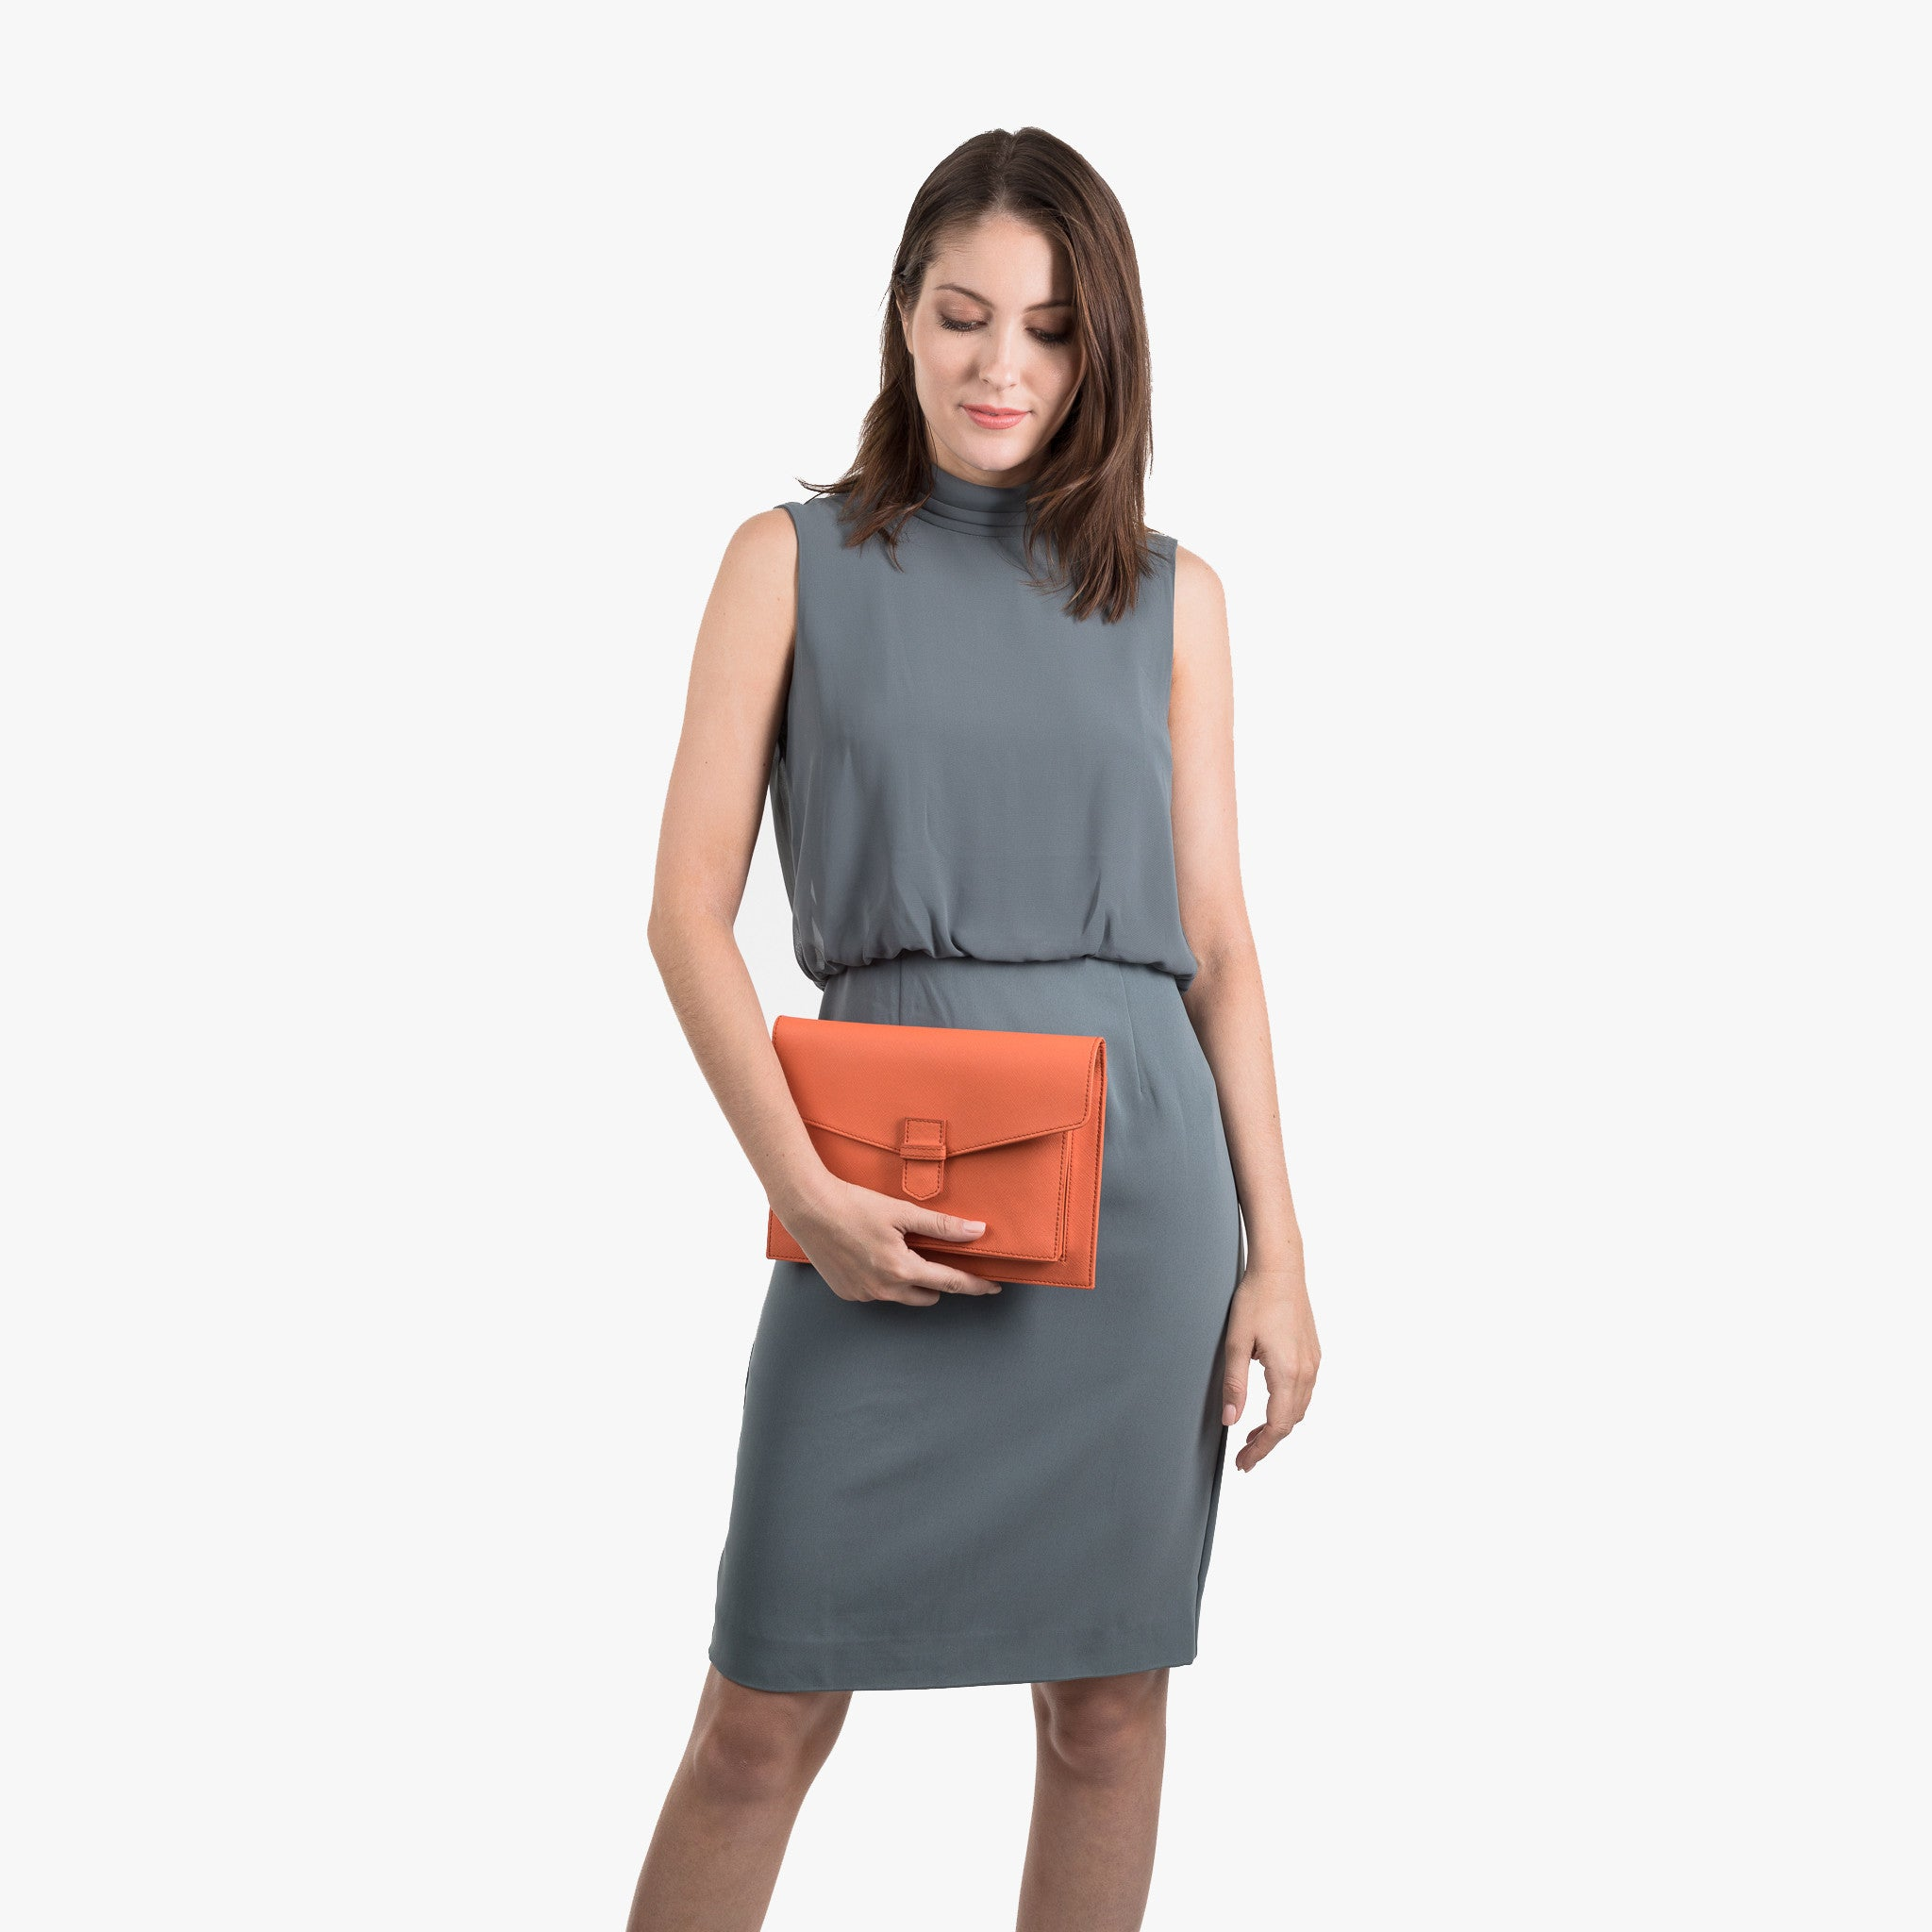 ONNI CLUTCH | Peach